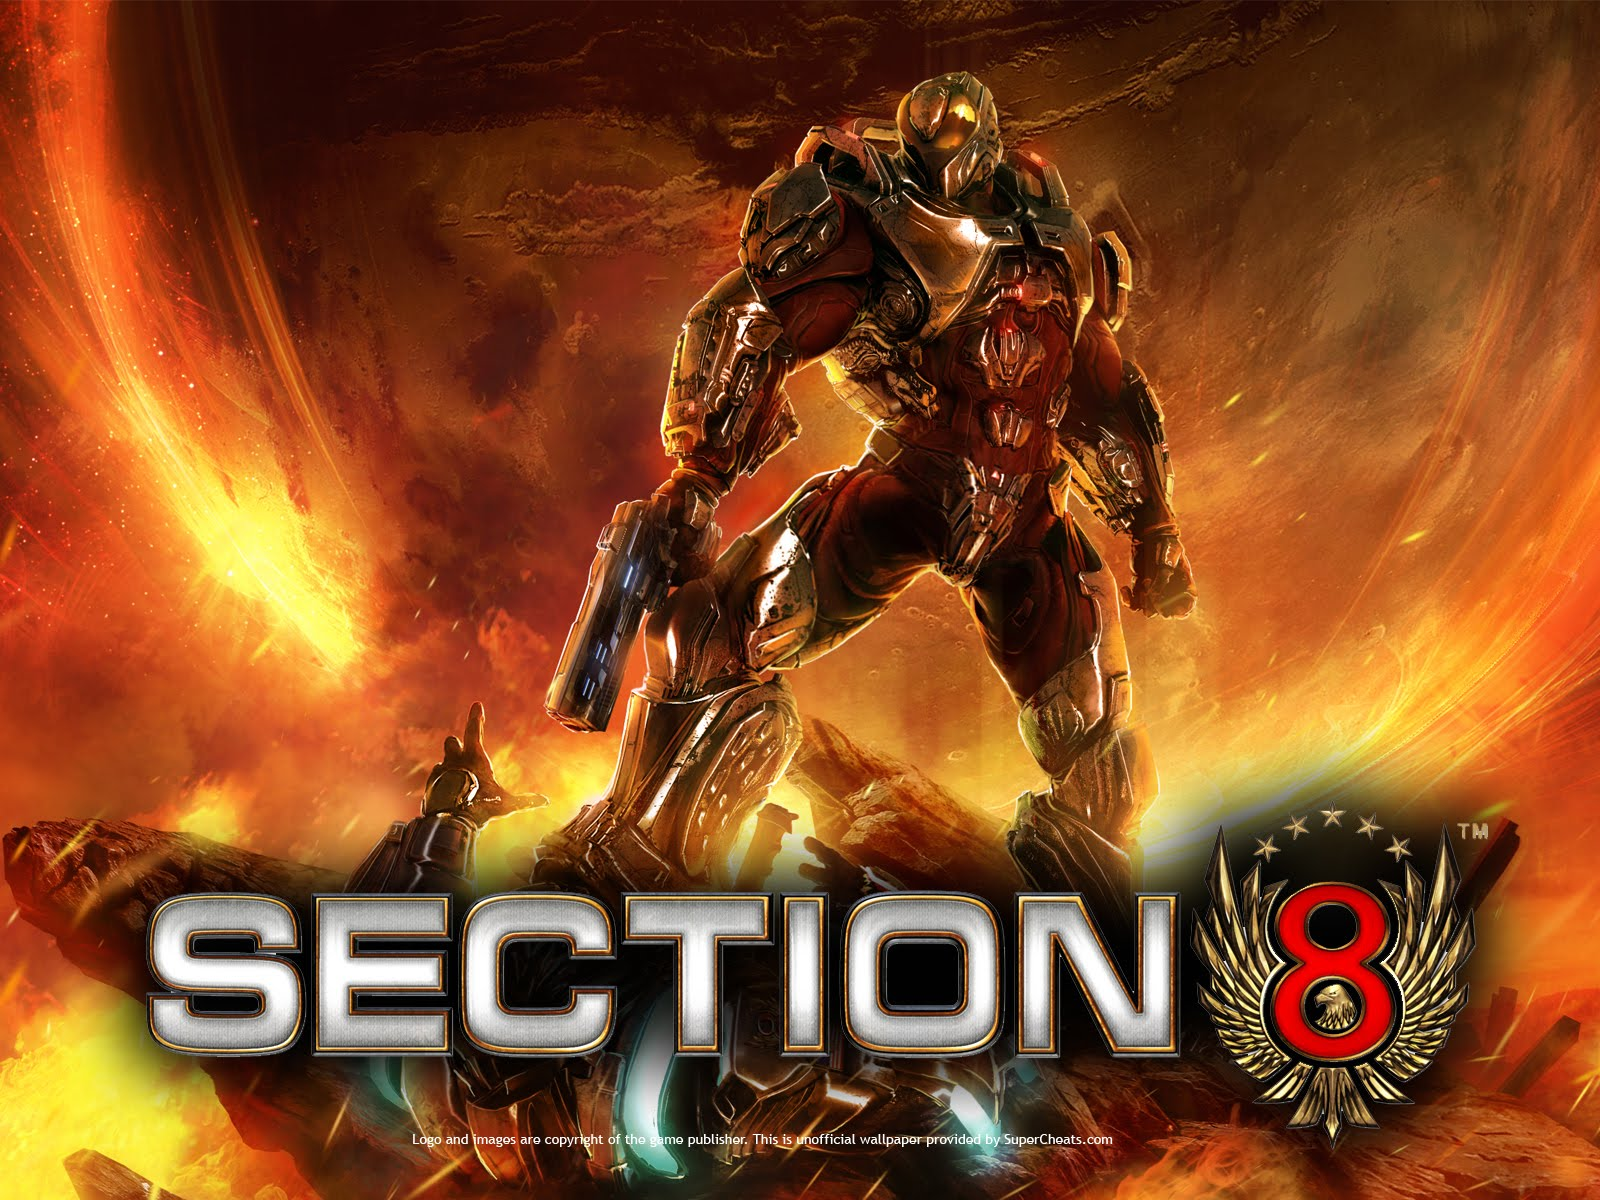 section 8 prejudice wallpapers hq (2011) | games chase | latest game